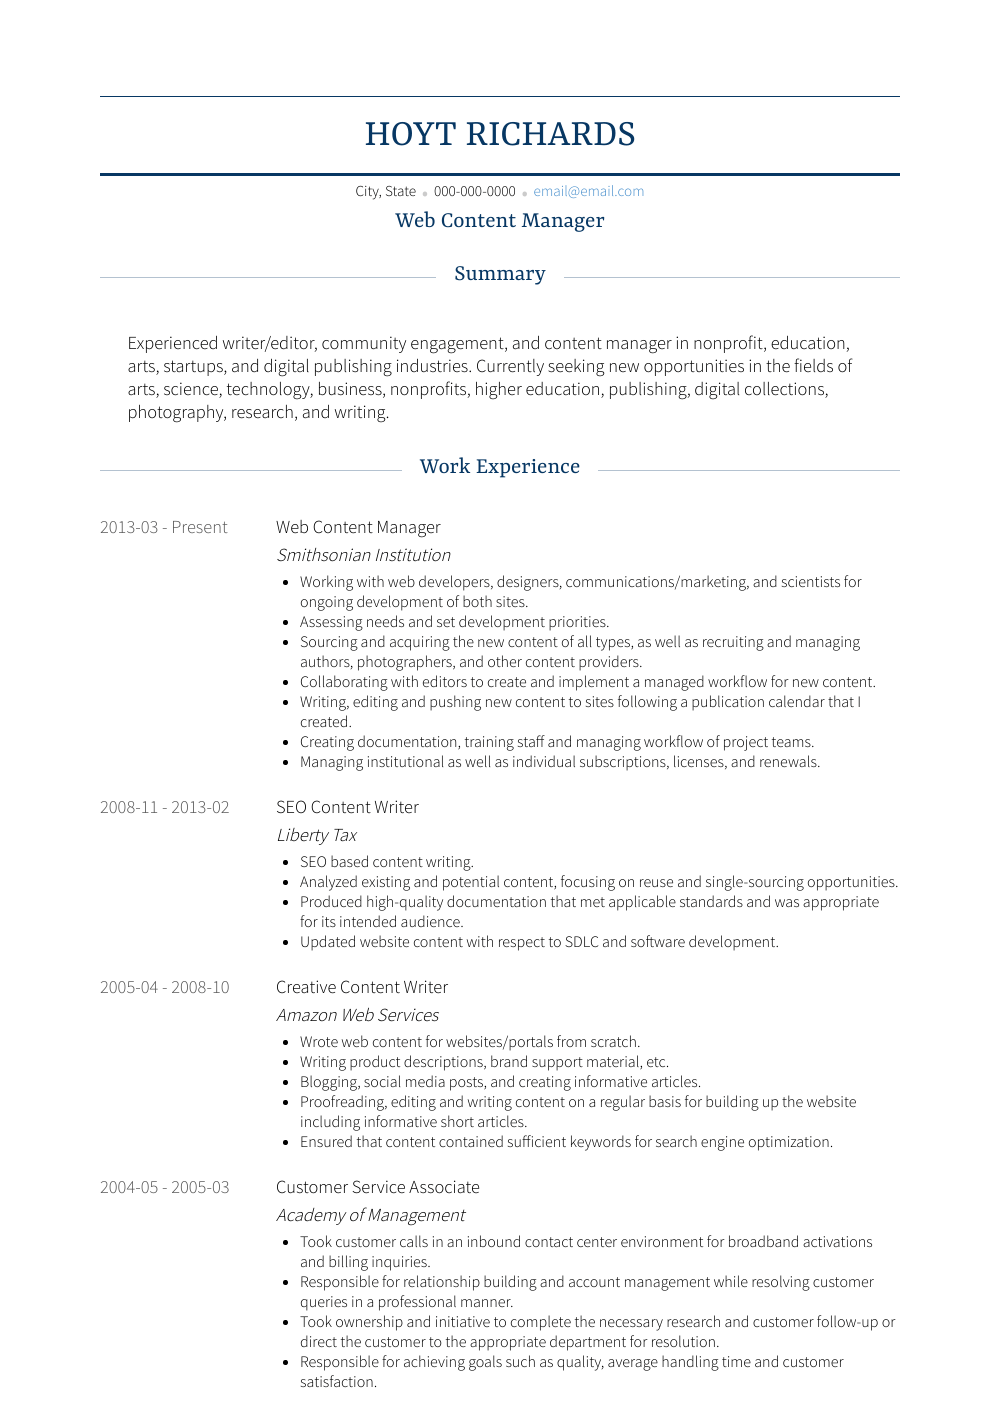 Web Content Manager  Resume Samples  Templates  VisualCV